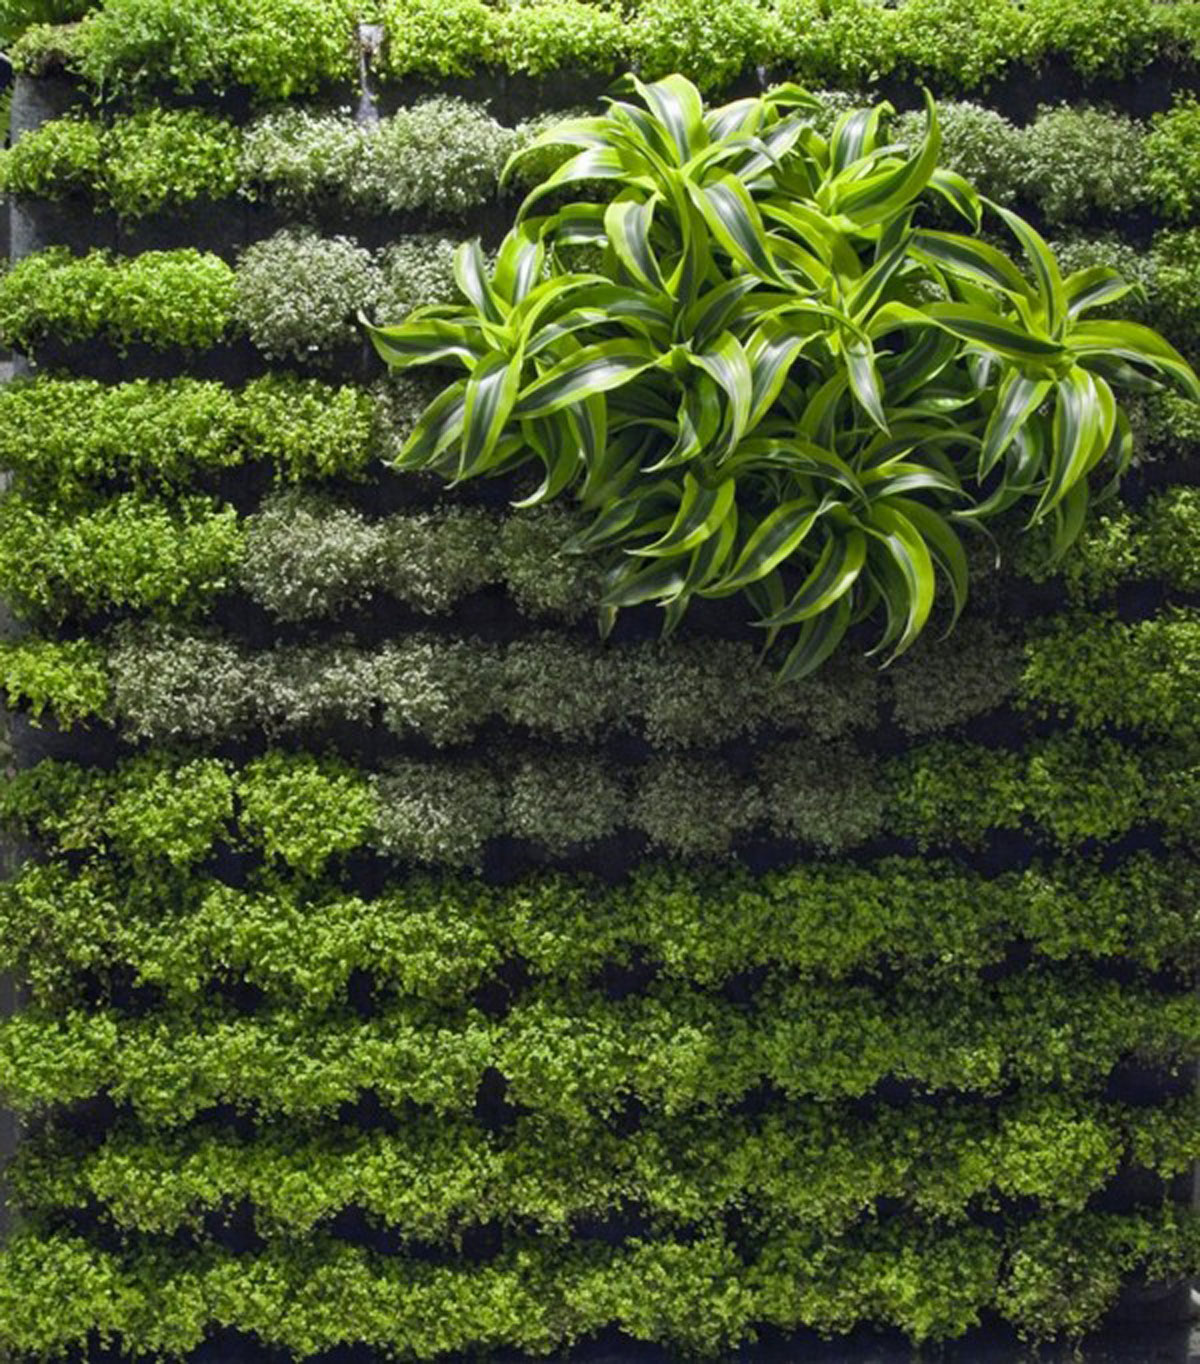 Applicative vertical garden designs for Vertical garden designs